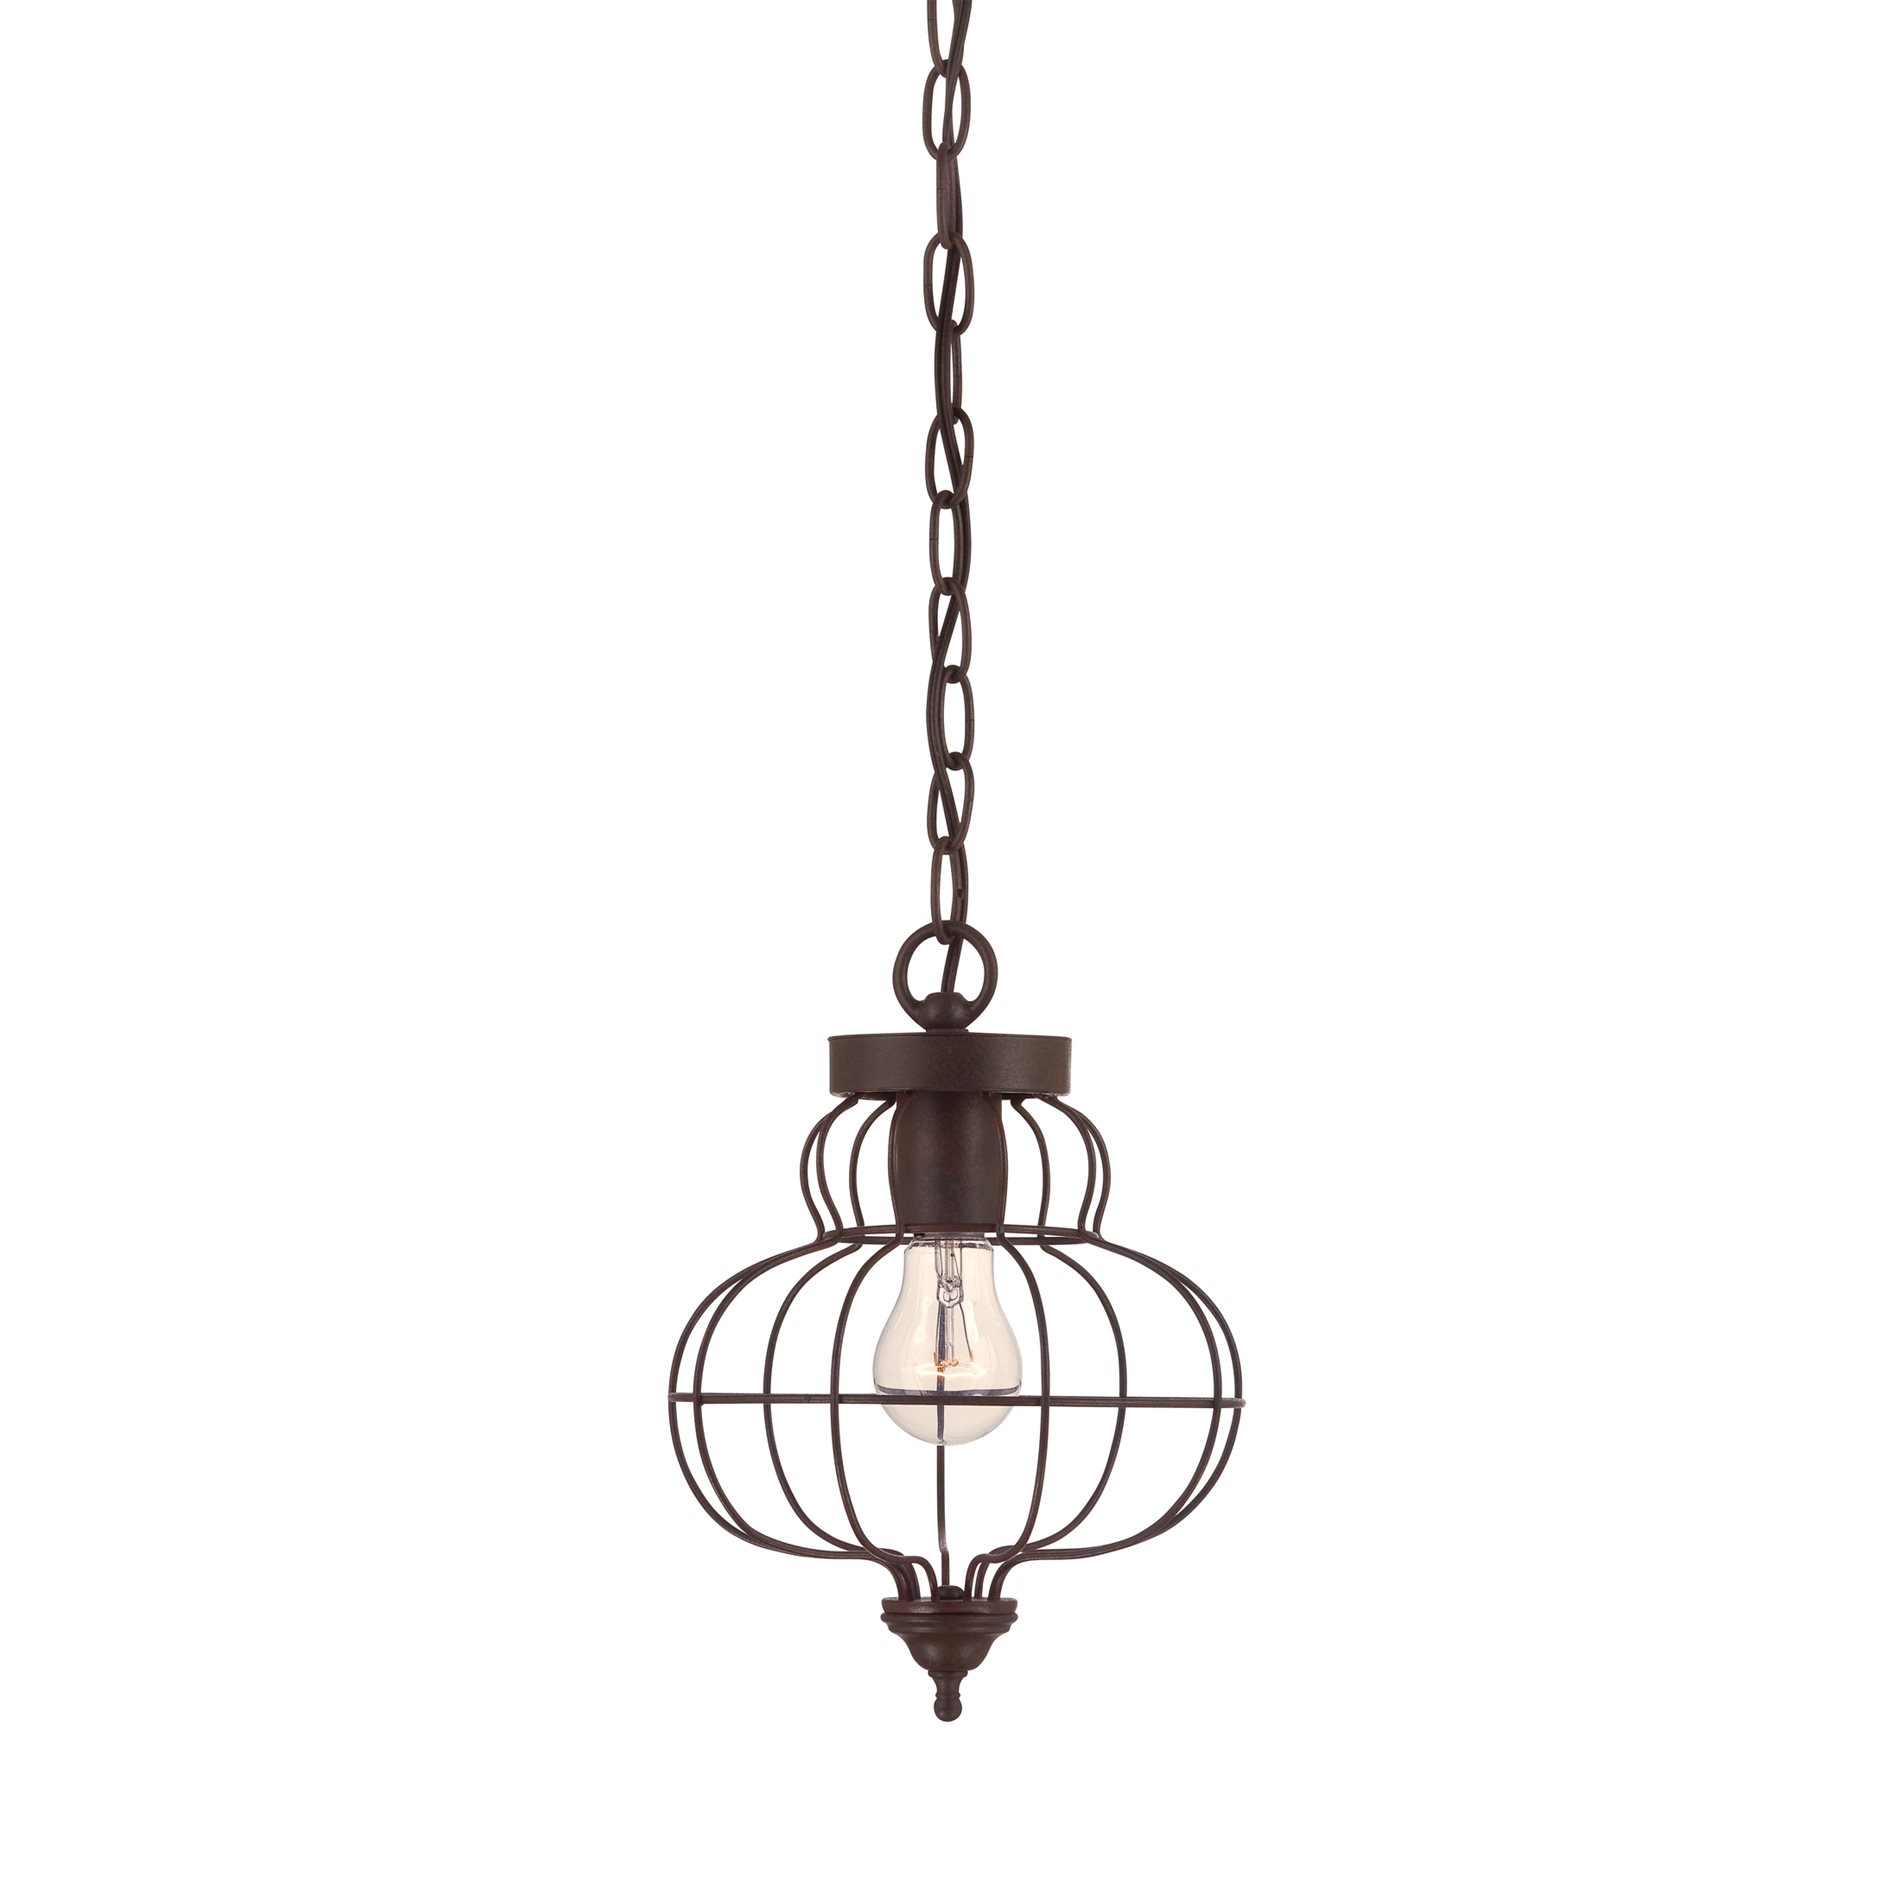 Quoizel Lla Ra Laila Traditional Pendant Light Qz Lla Ra